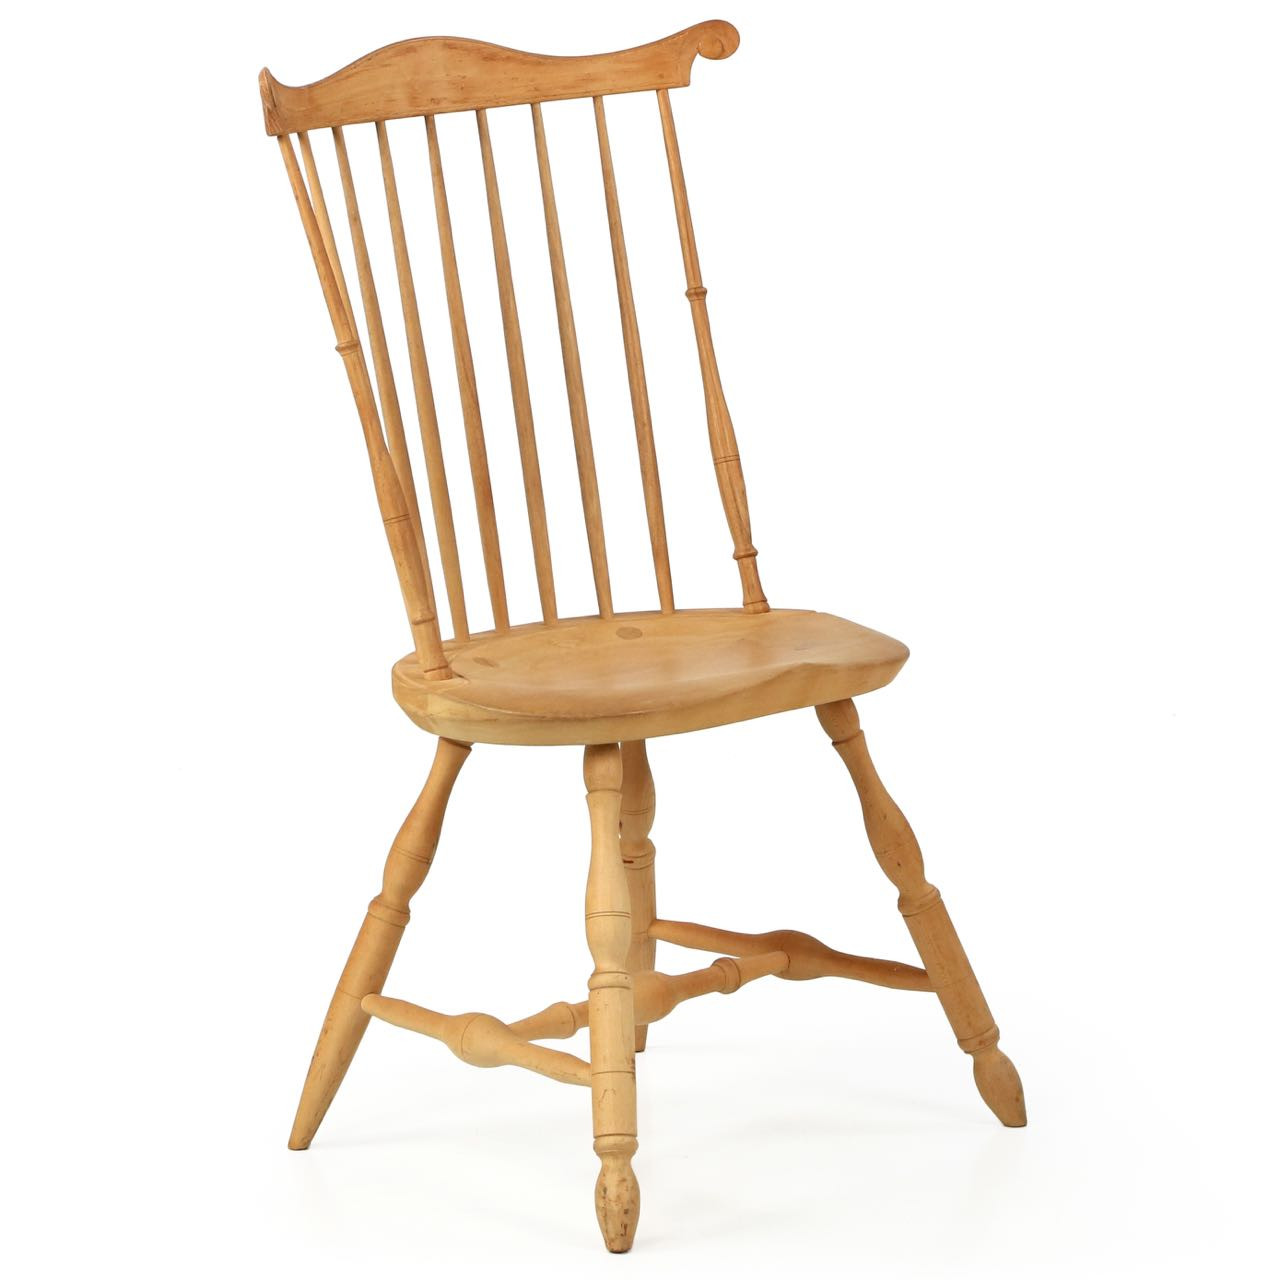 Windsor Style Chairs American Lancaster Style Fanback Windsor Side Chair 20th